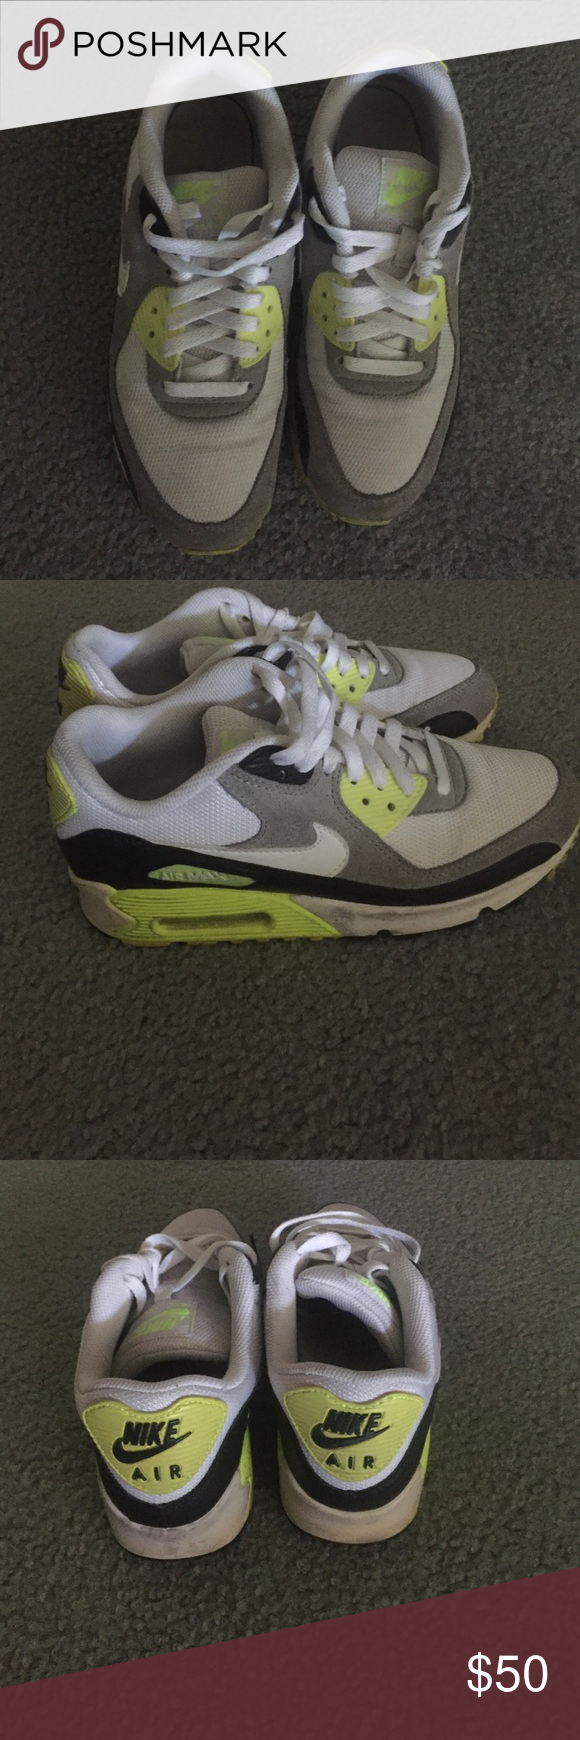 Nike air max Nike air max size 38, used a couple times, sole a little dirty but easy to clean Nike Shoes Sneakers